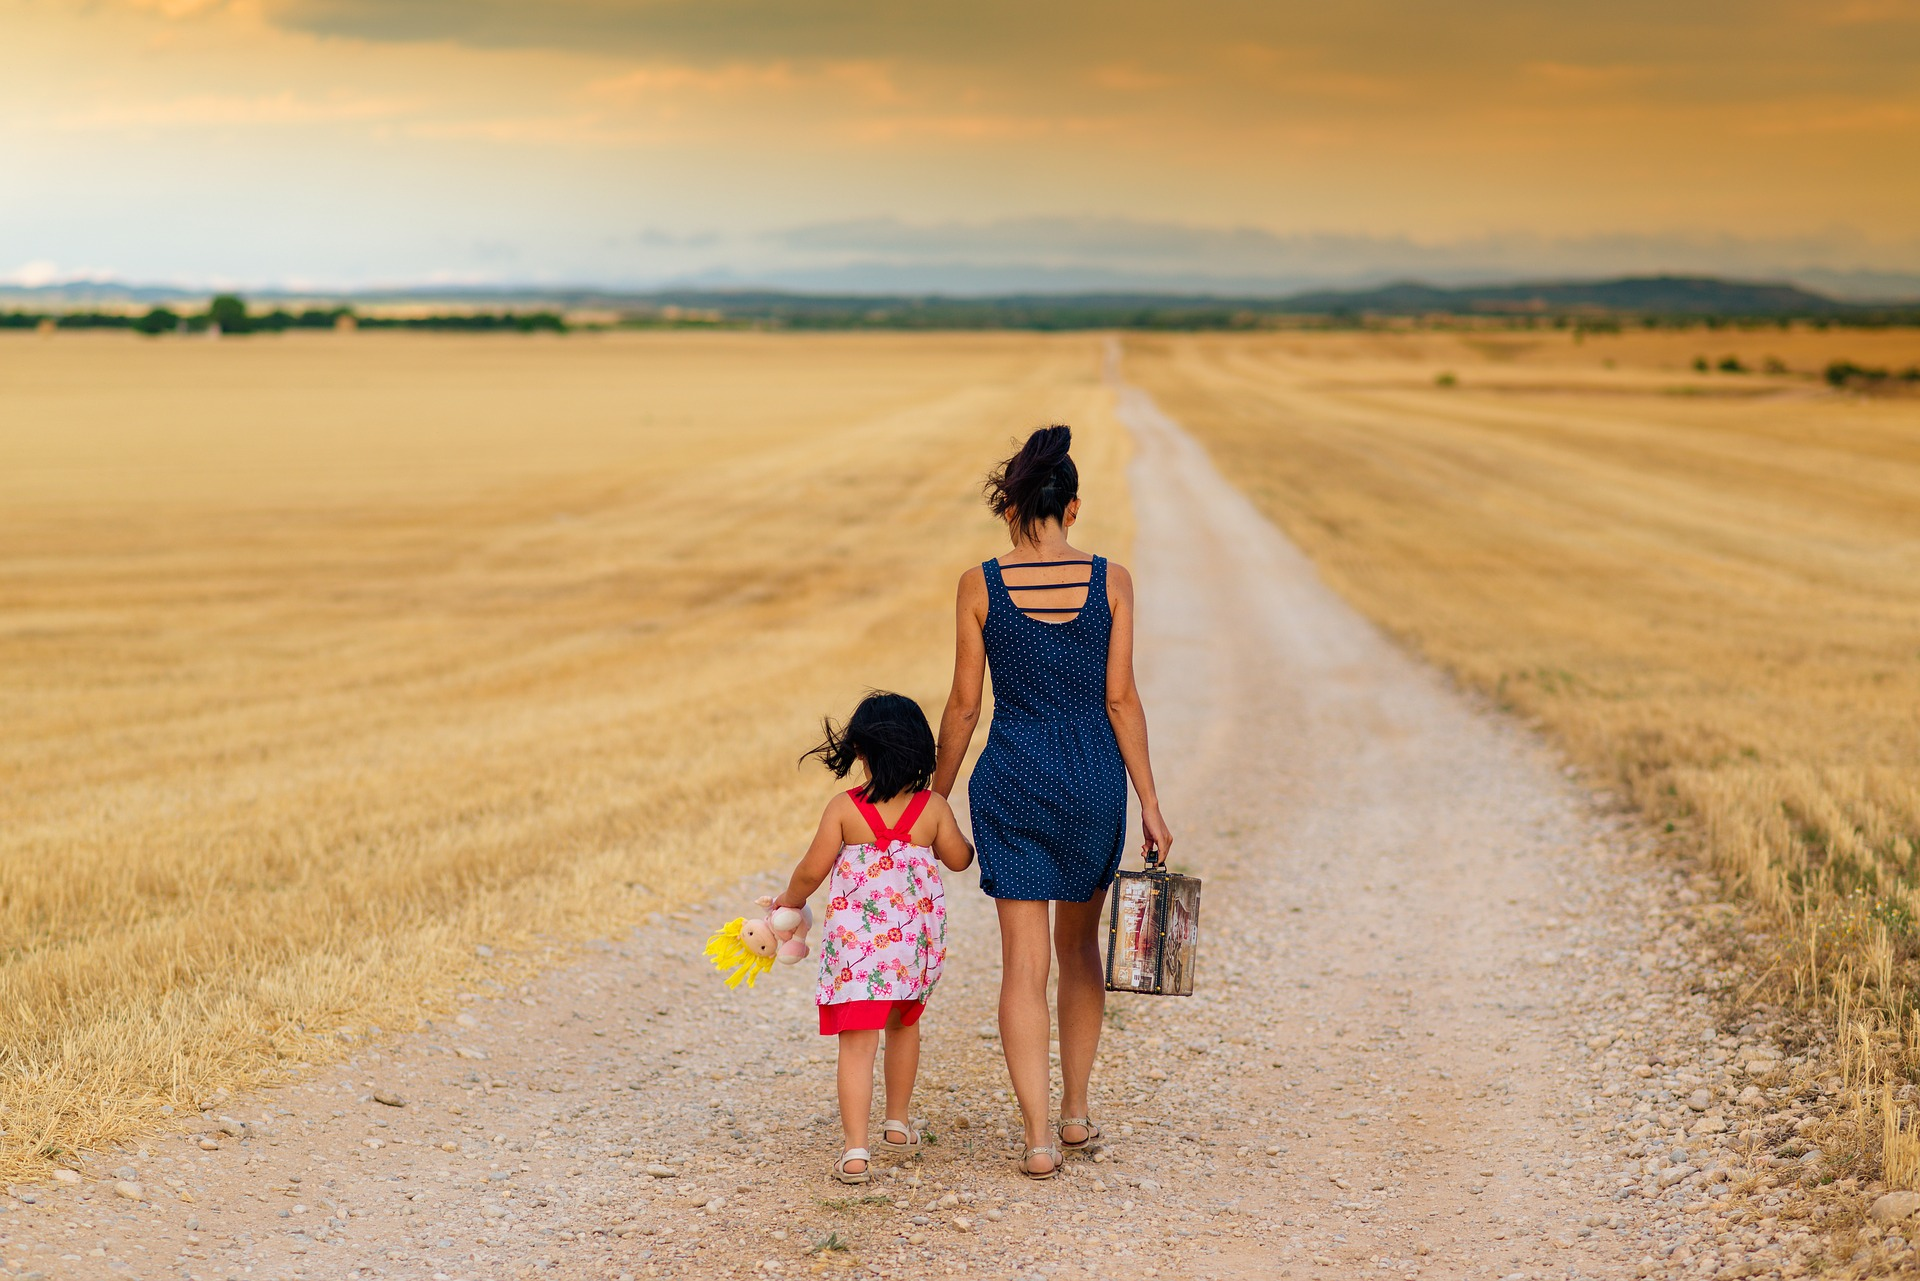 mother and child walking on a road parent shaming degrade mothers health